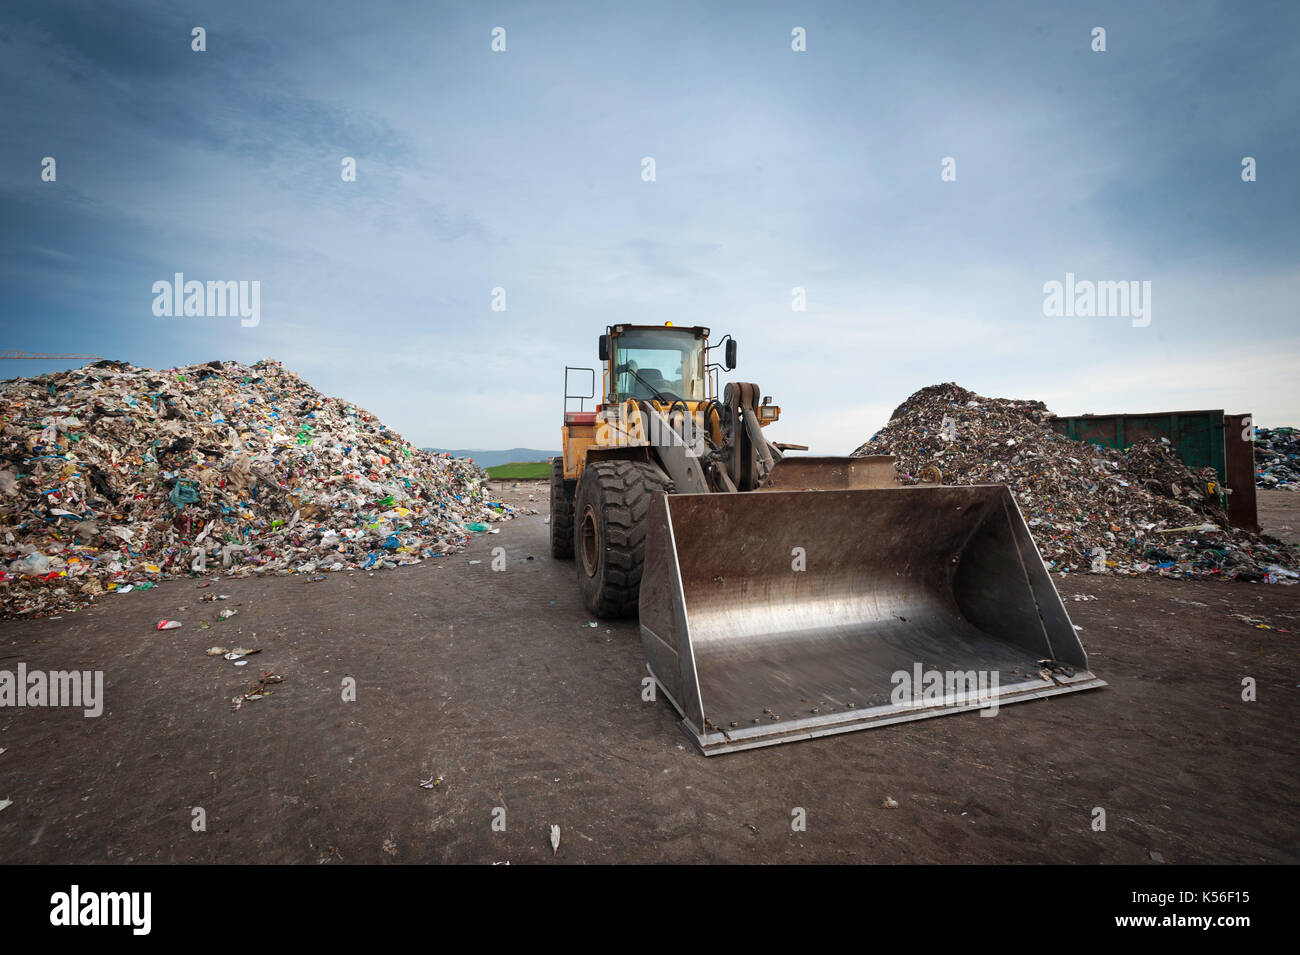 Bulldozer in front of pile of waste at city landfill. - Stock Image